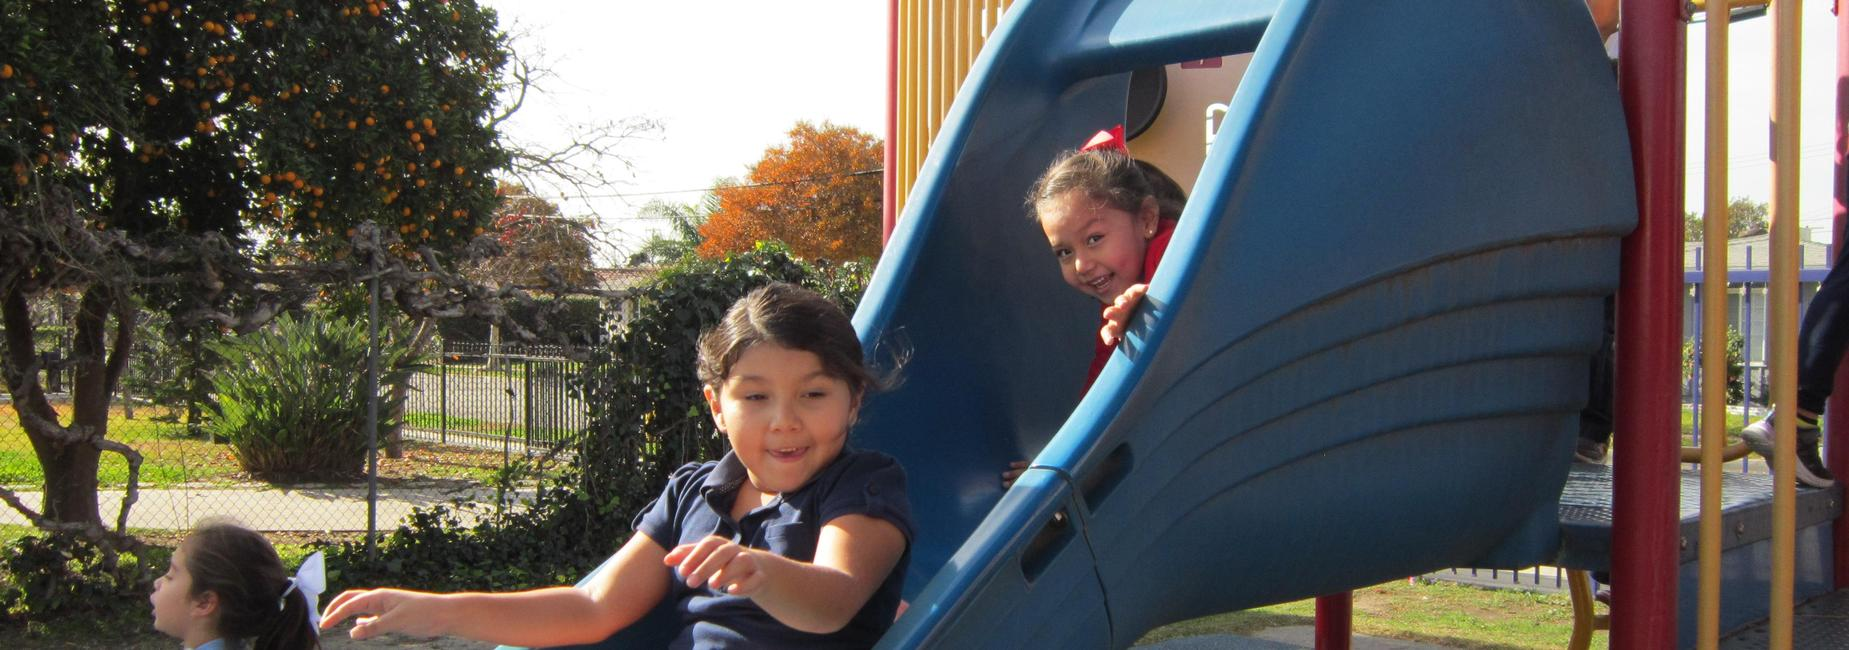 Students on the slide during kindergarten recess.